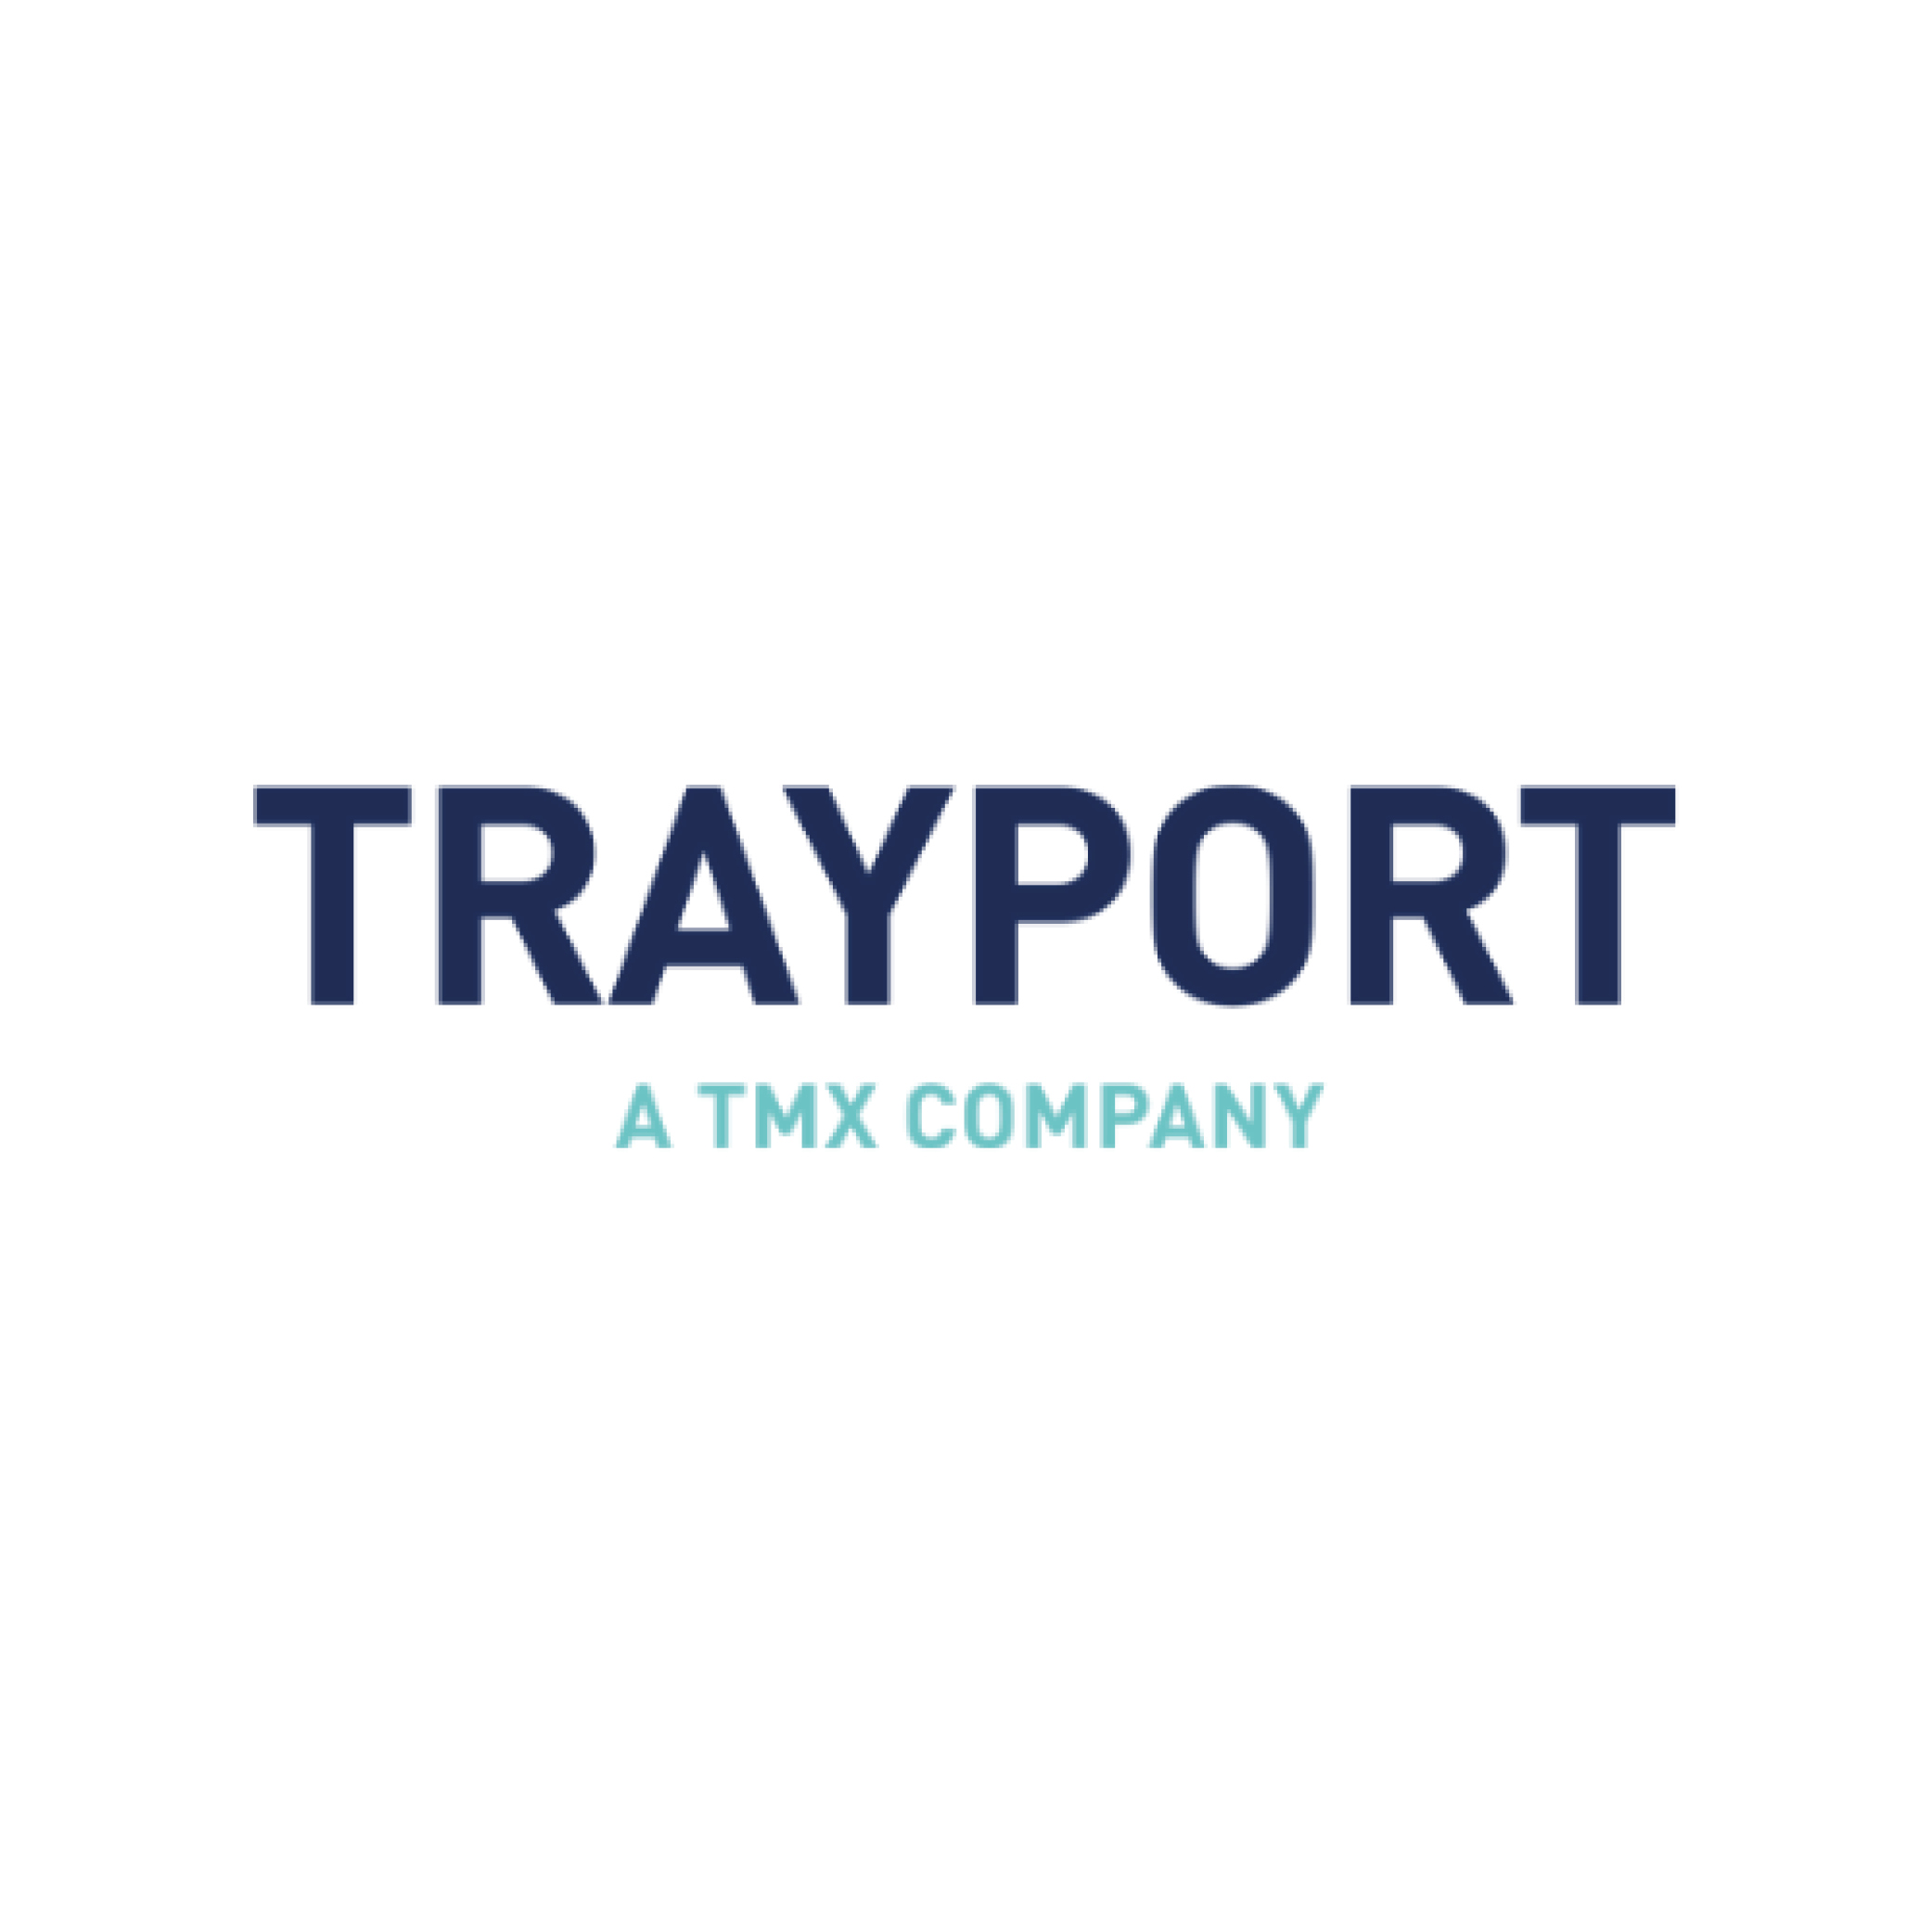 Trayport Ltd